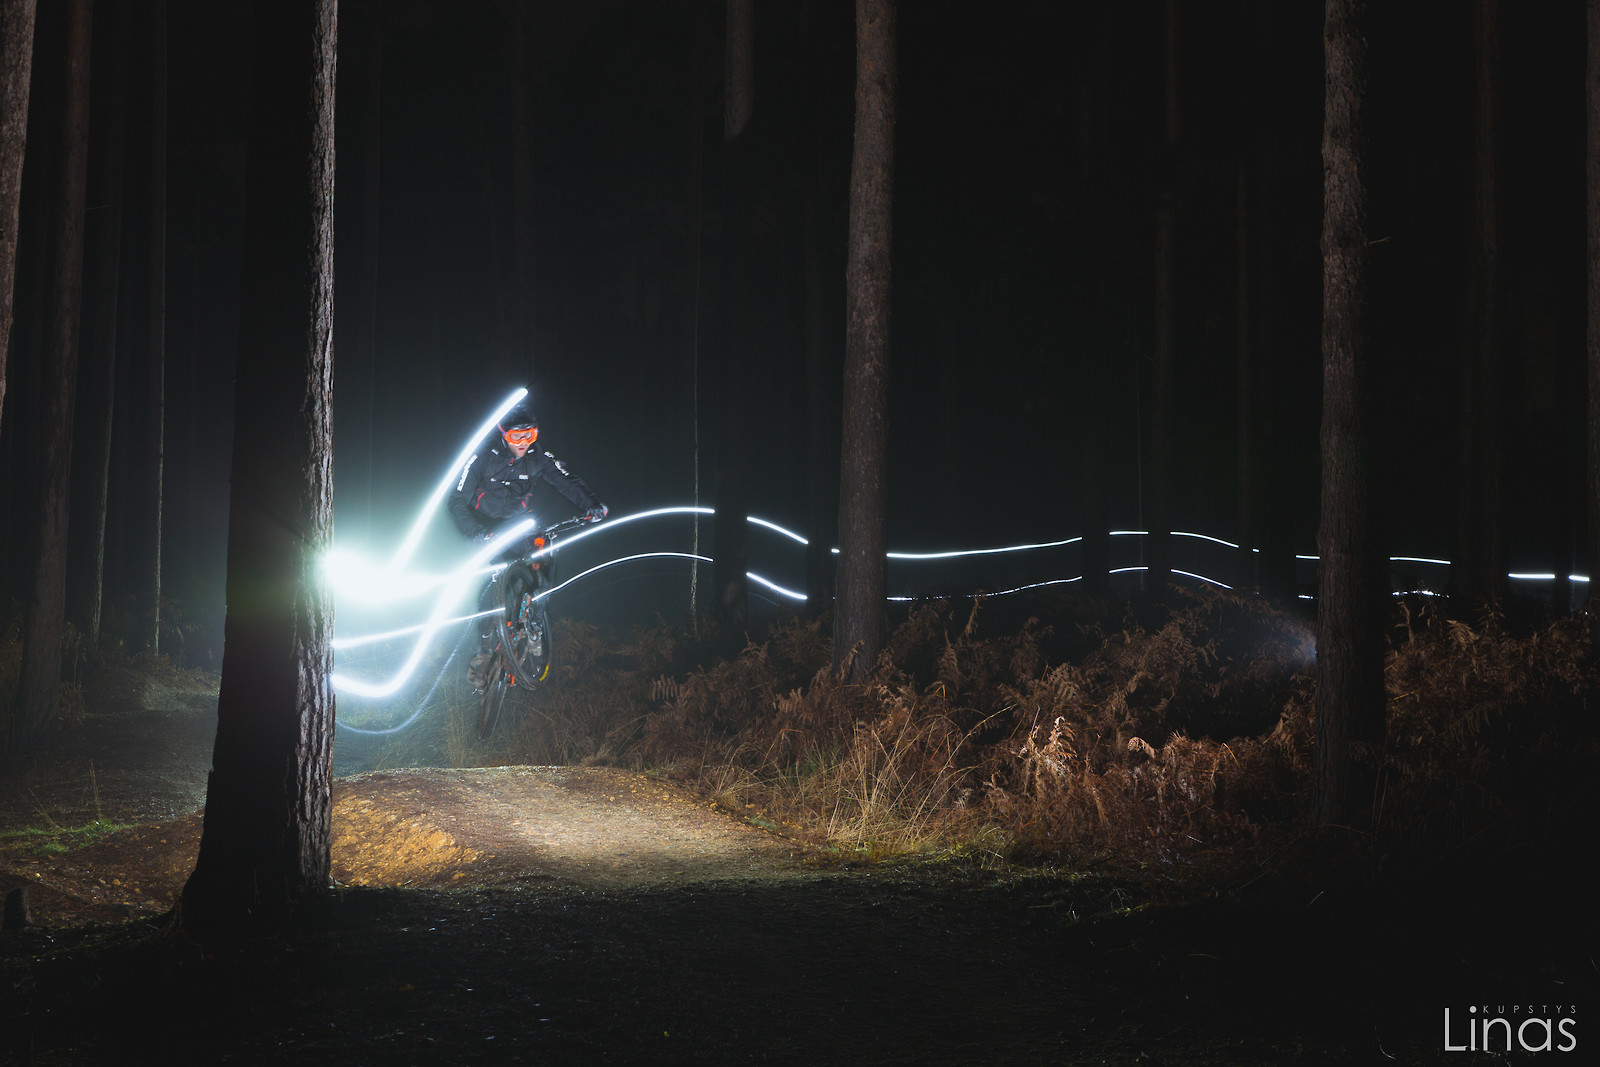 Sending it to the night - linask24 - Mountain Biking Pictures - Vital MTB